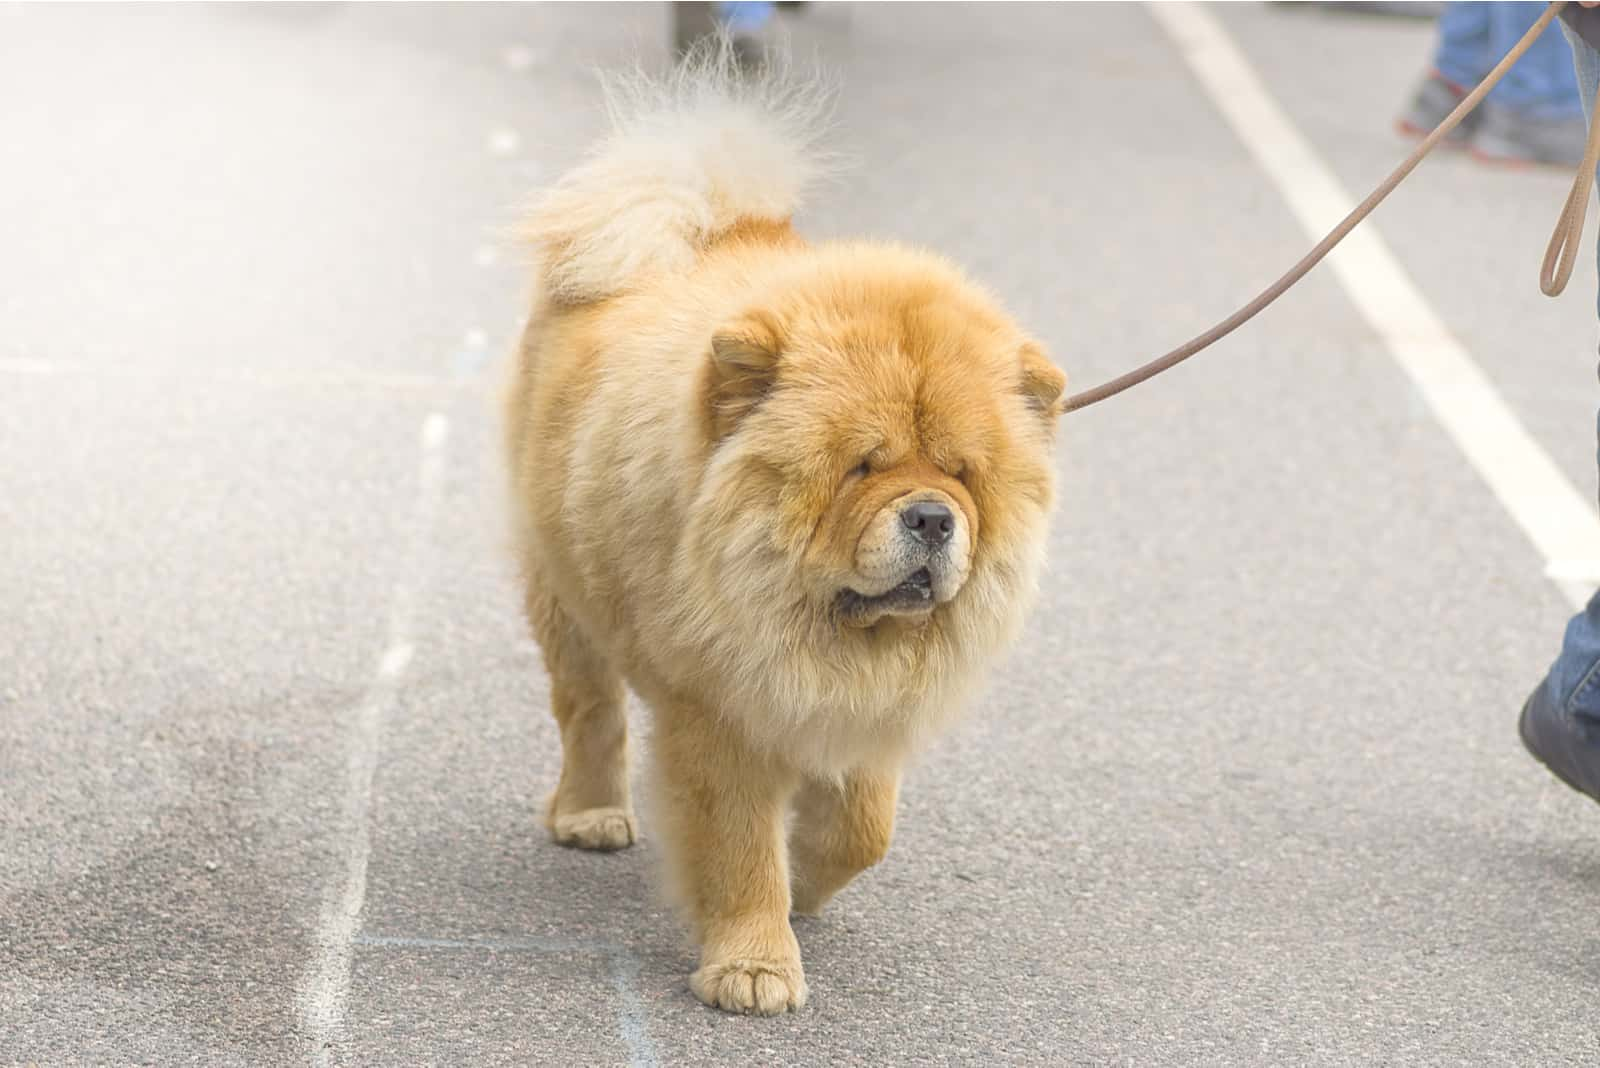 Chow Chow dog walking on the street